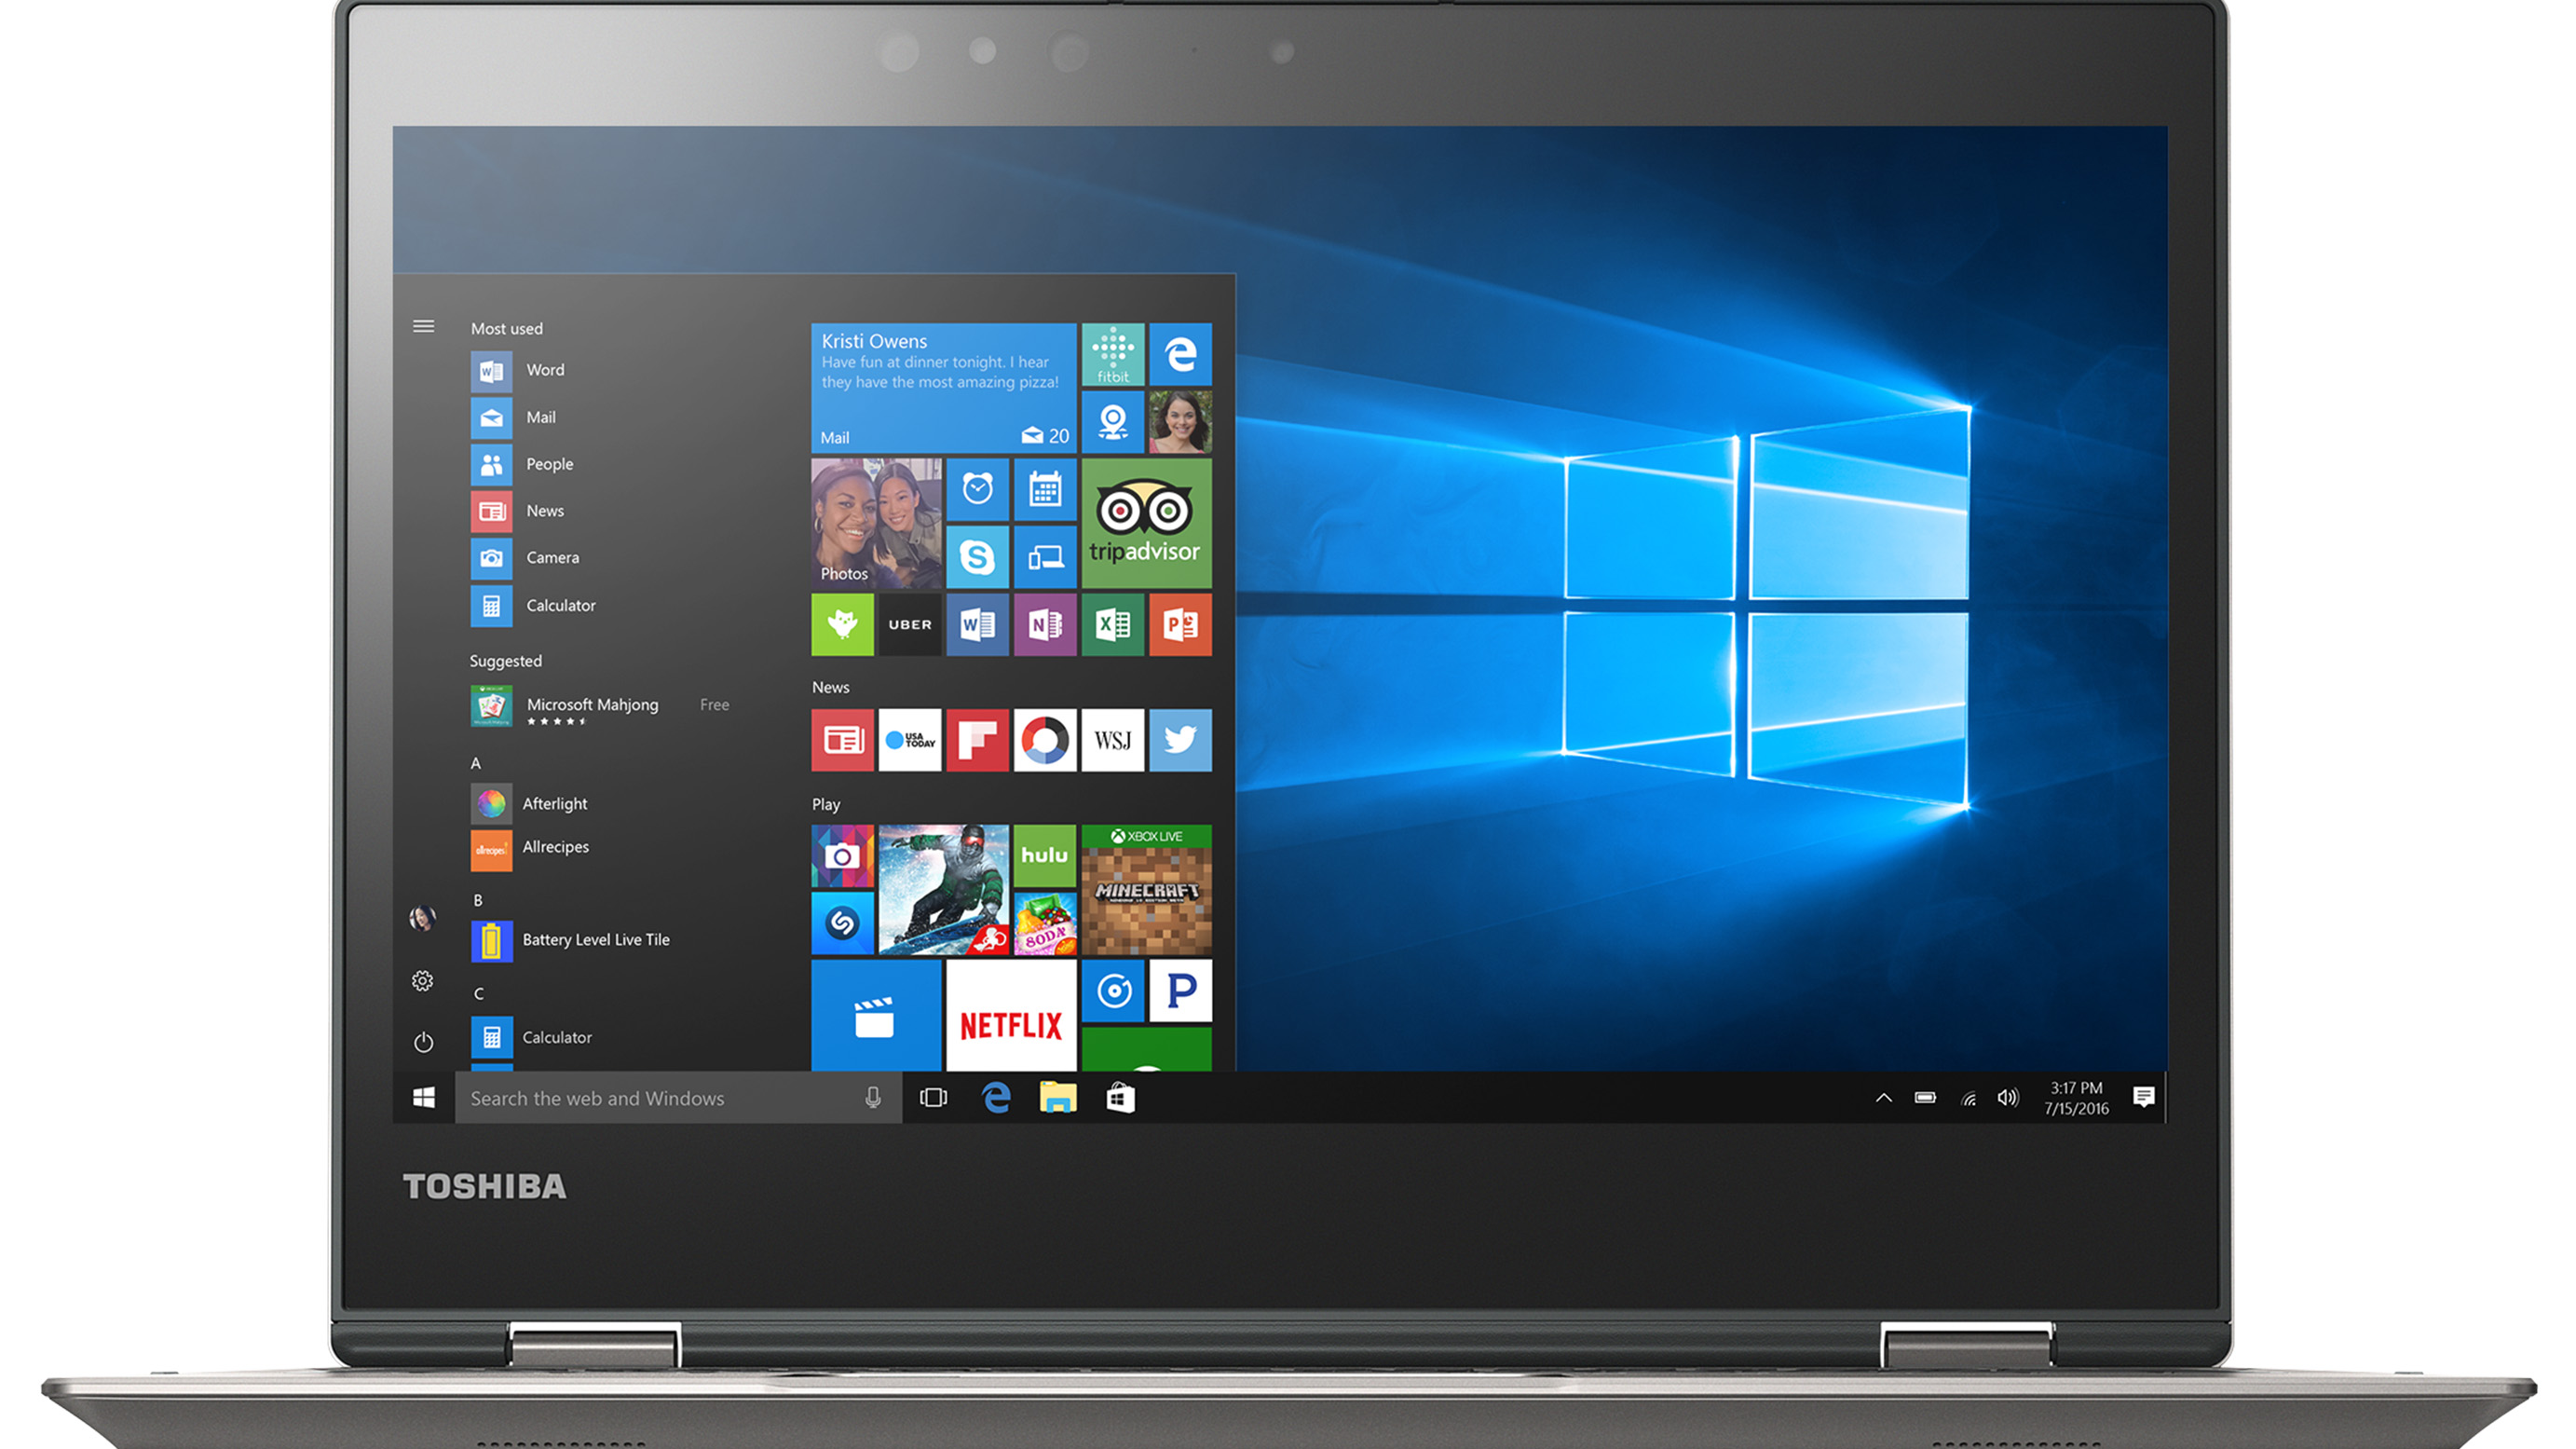 Toshiba Portege X20W Signature Edition 2 in 1 PC• 12.5-inch Full HD touchscreen • Up to Intel i7 7th Gen • Up to 16GB memory/Up to 512GB SSD • Up to 13 hours battery life